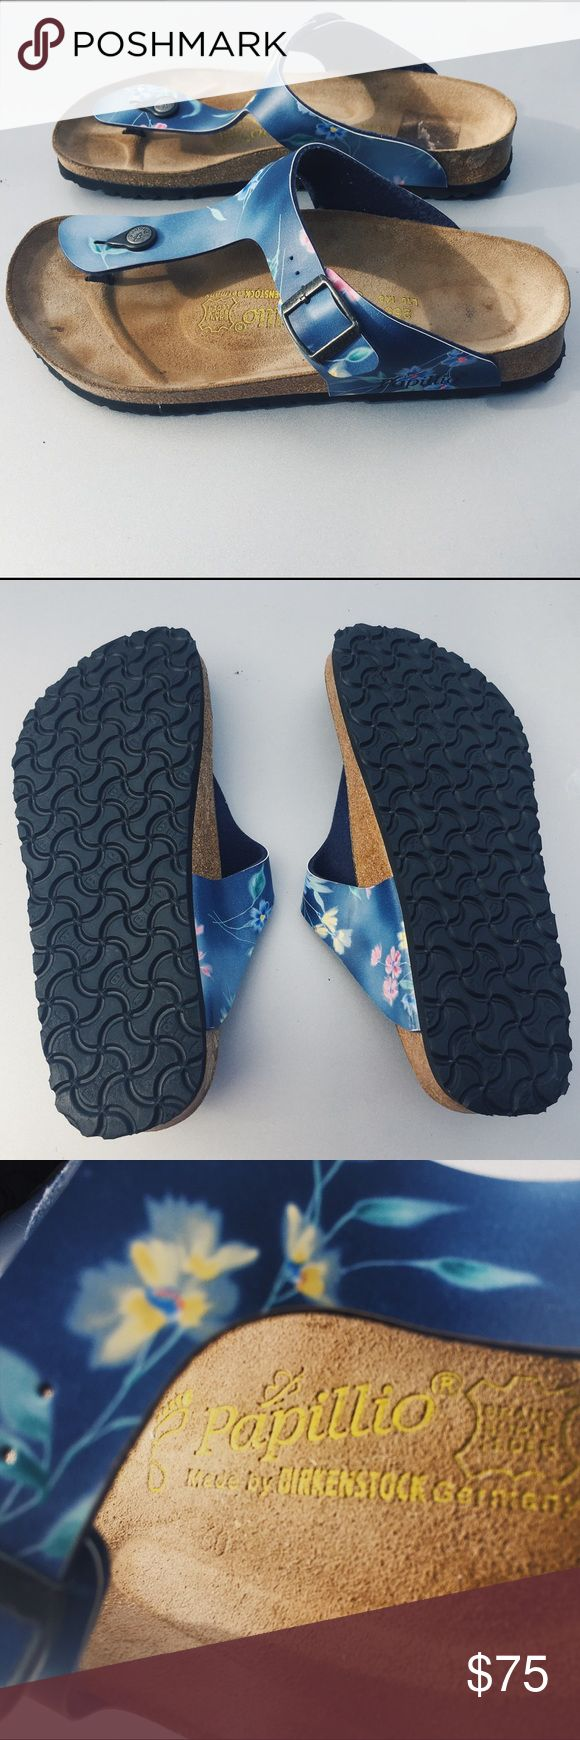 Birkenstock Papillio Gizeh Birko-Flor Sandals Birkenstock Papillio Gizeh Birko-Flor sandals in a RARE tropical floral blue printed pattern. These thong style sandals from Birkenstock in great condition! Only worn once, never out of the house. Size 41, fits a 10-11 best. Purchased new in Germany! Birkenstock Shoes Sandals